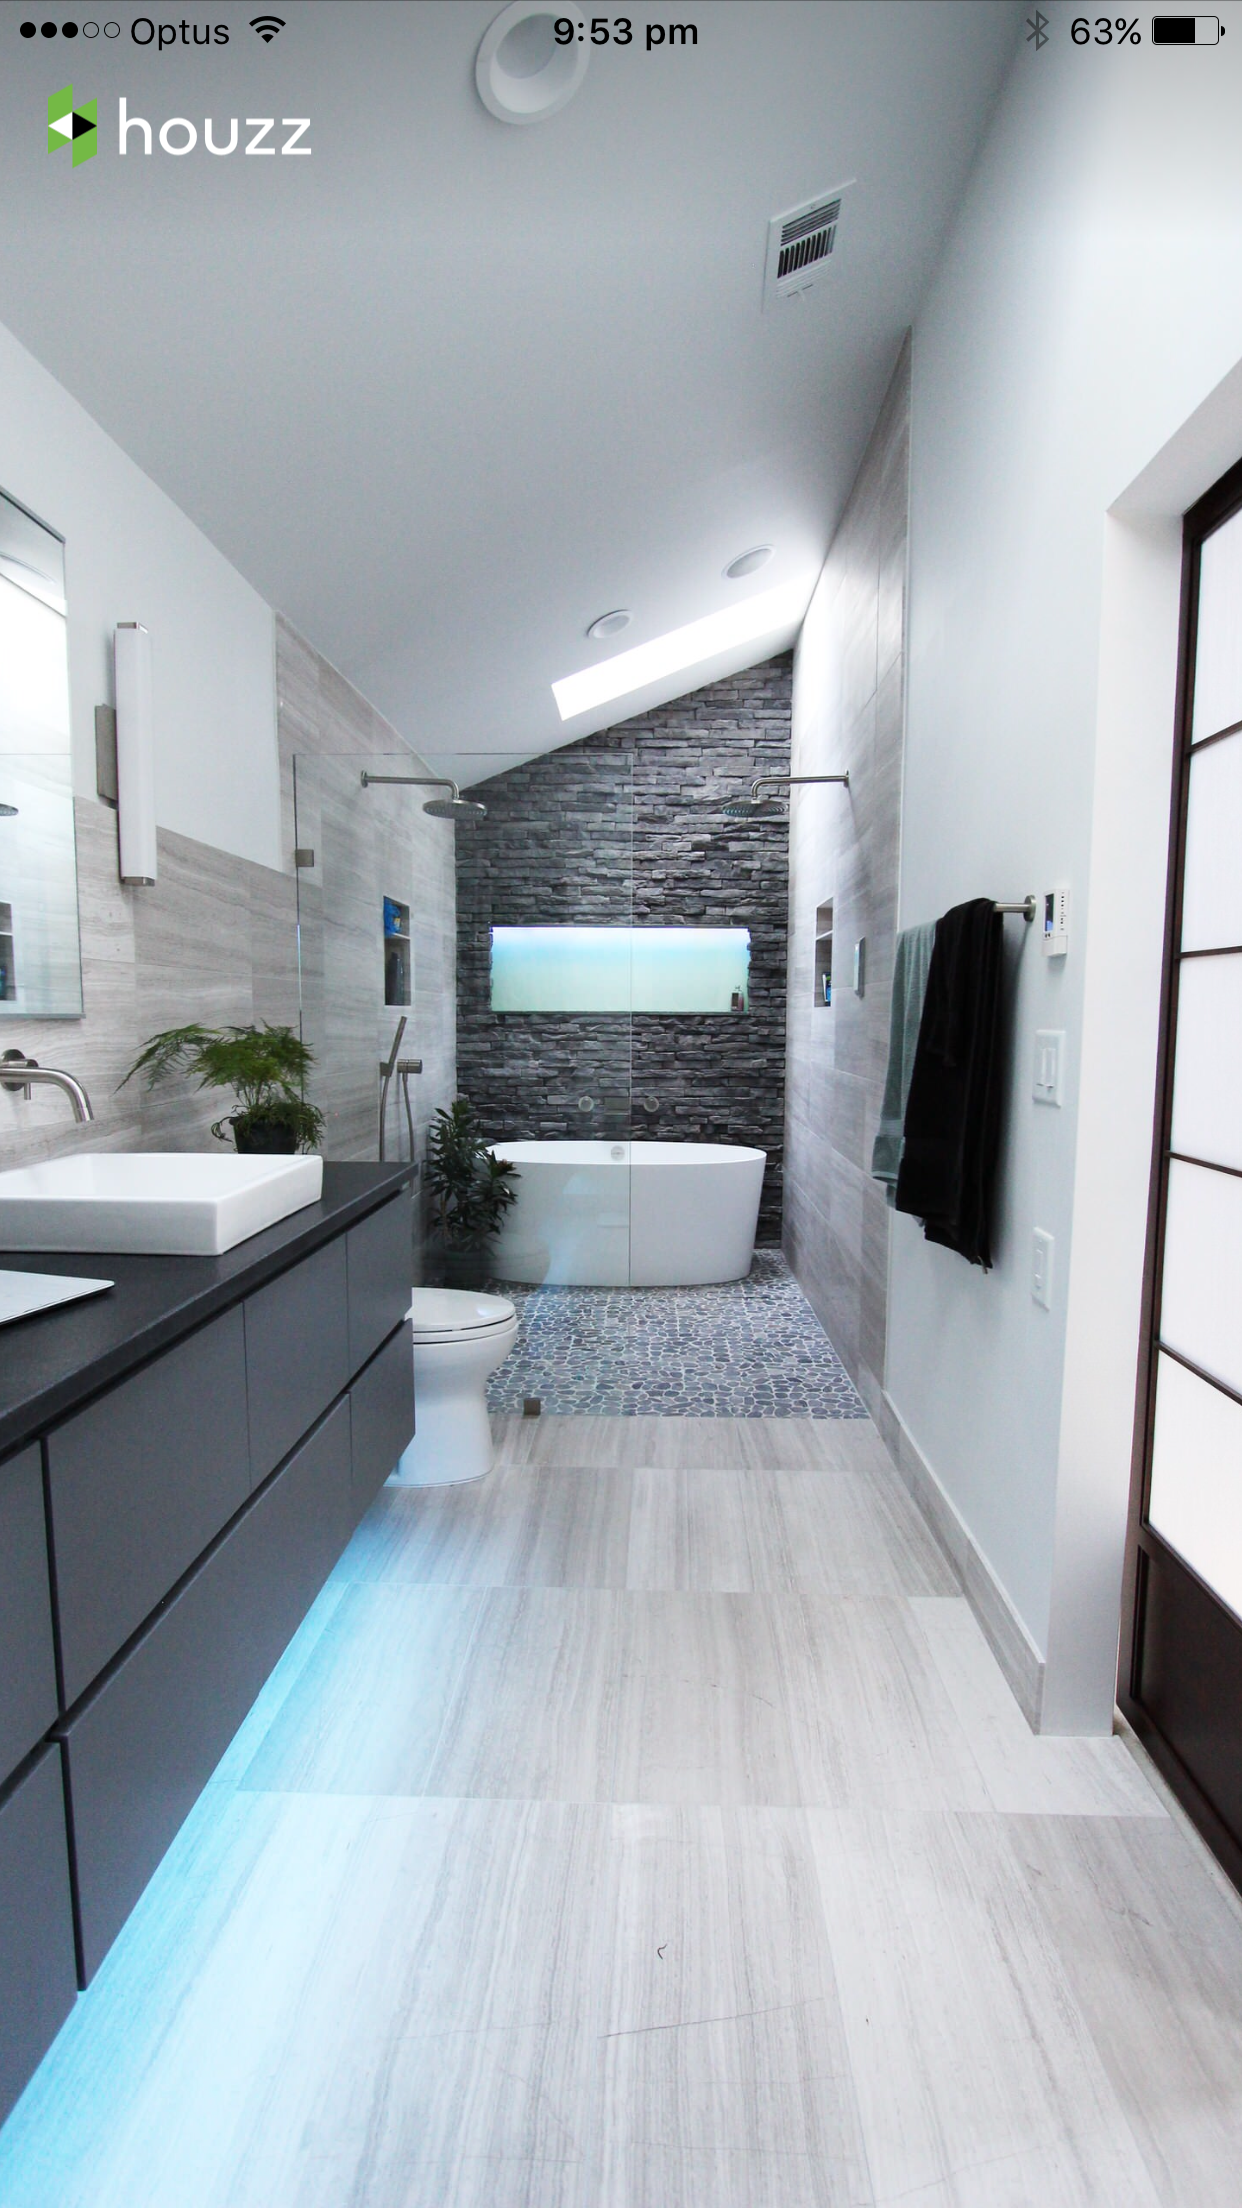 Long narrow bathroom double shower and vanity glass wall to create